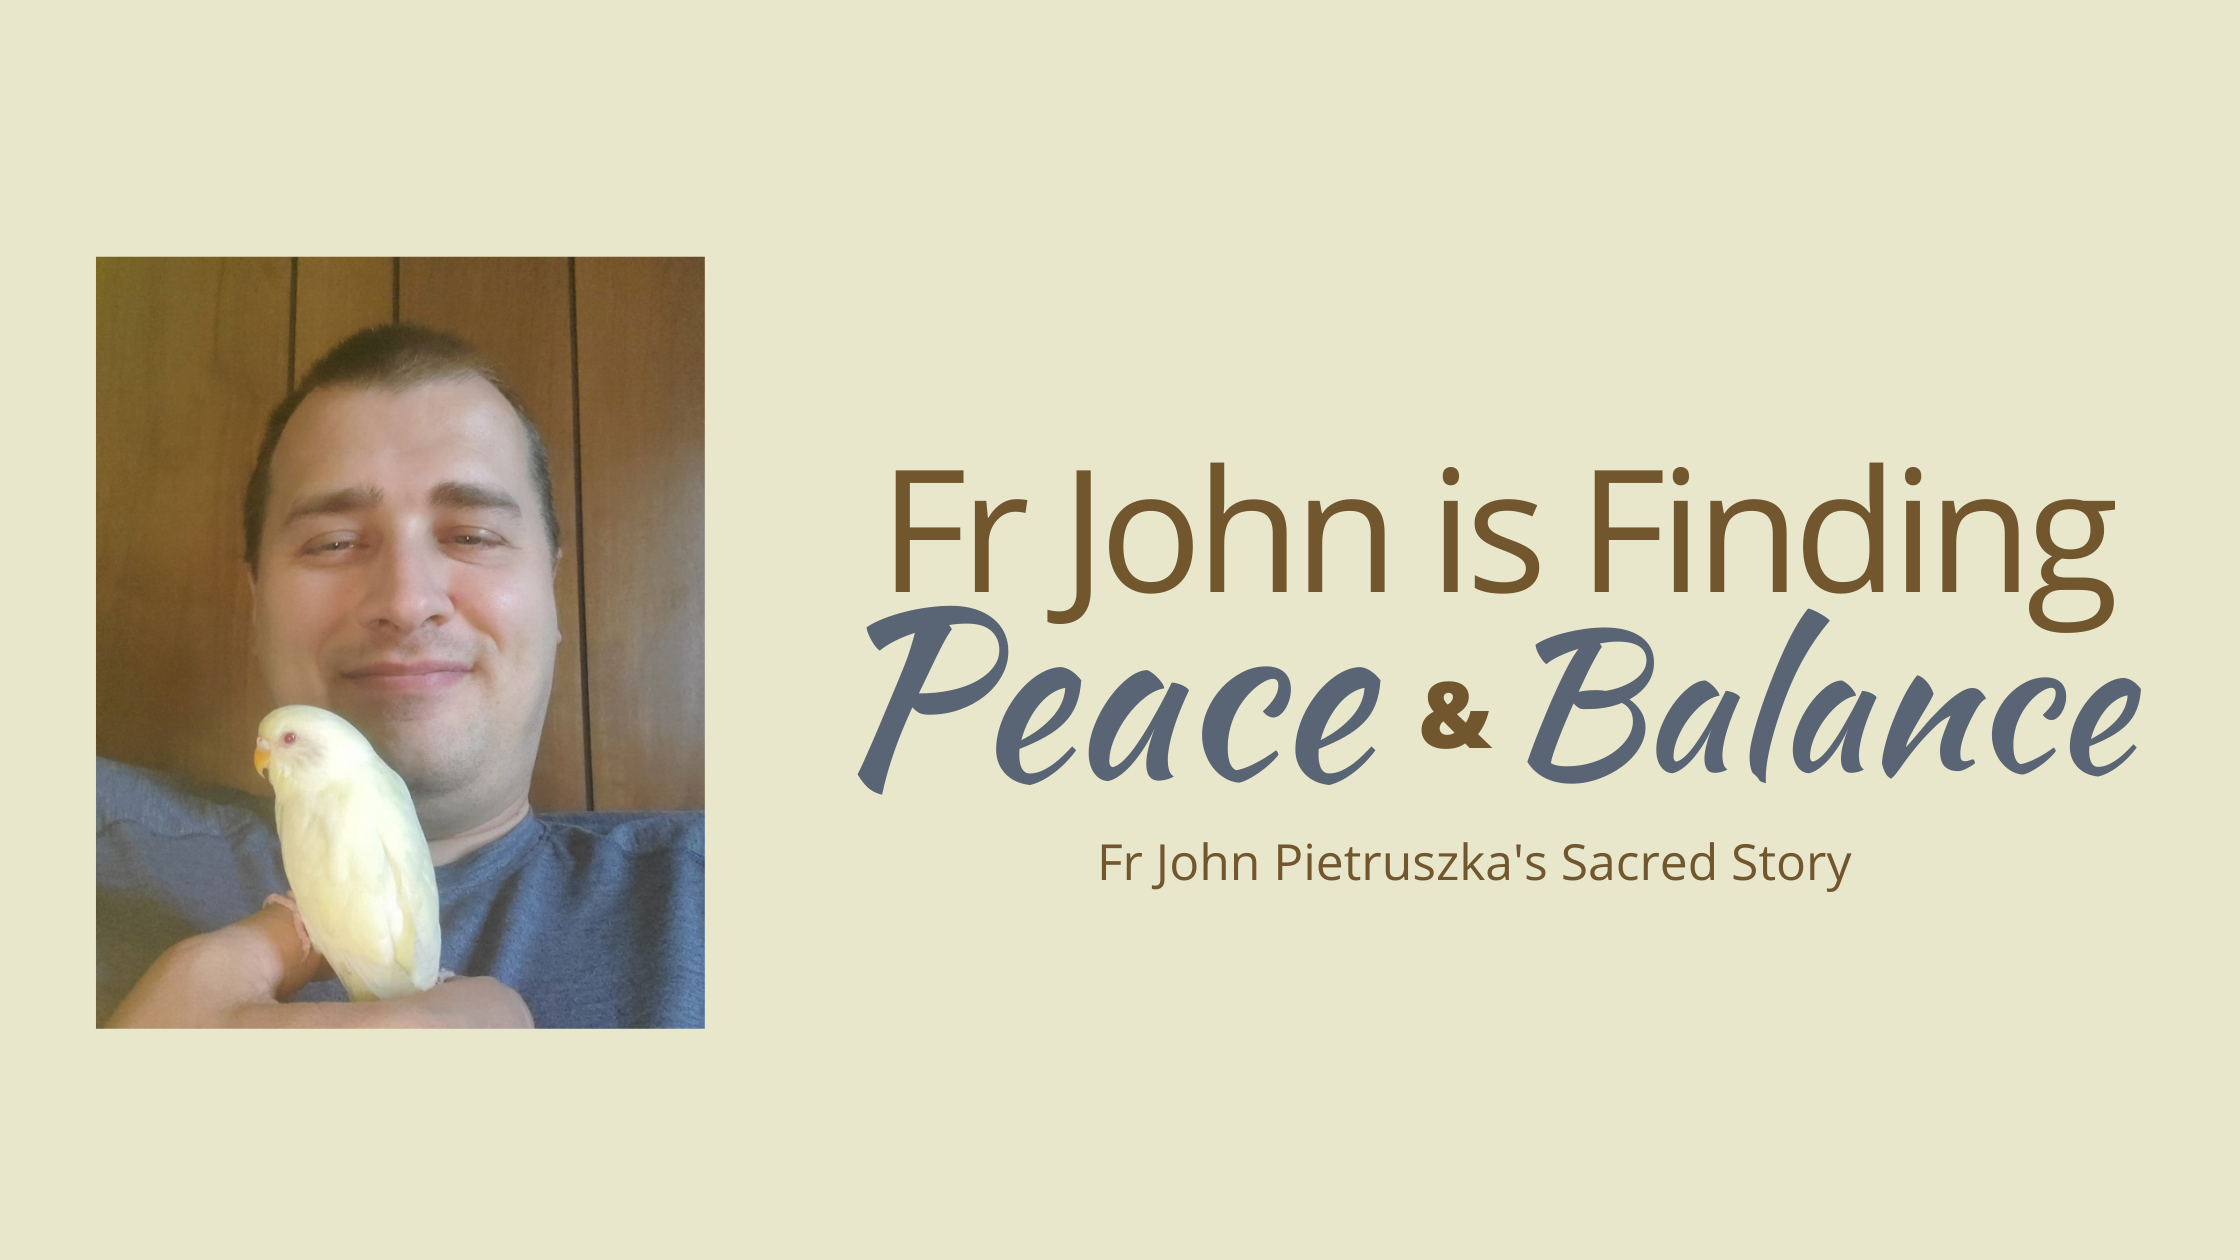 Fr John is finding Peace and Balance